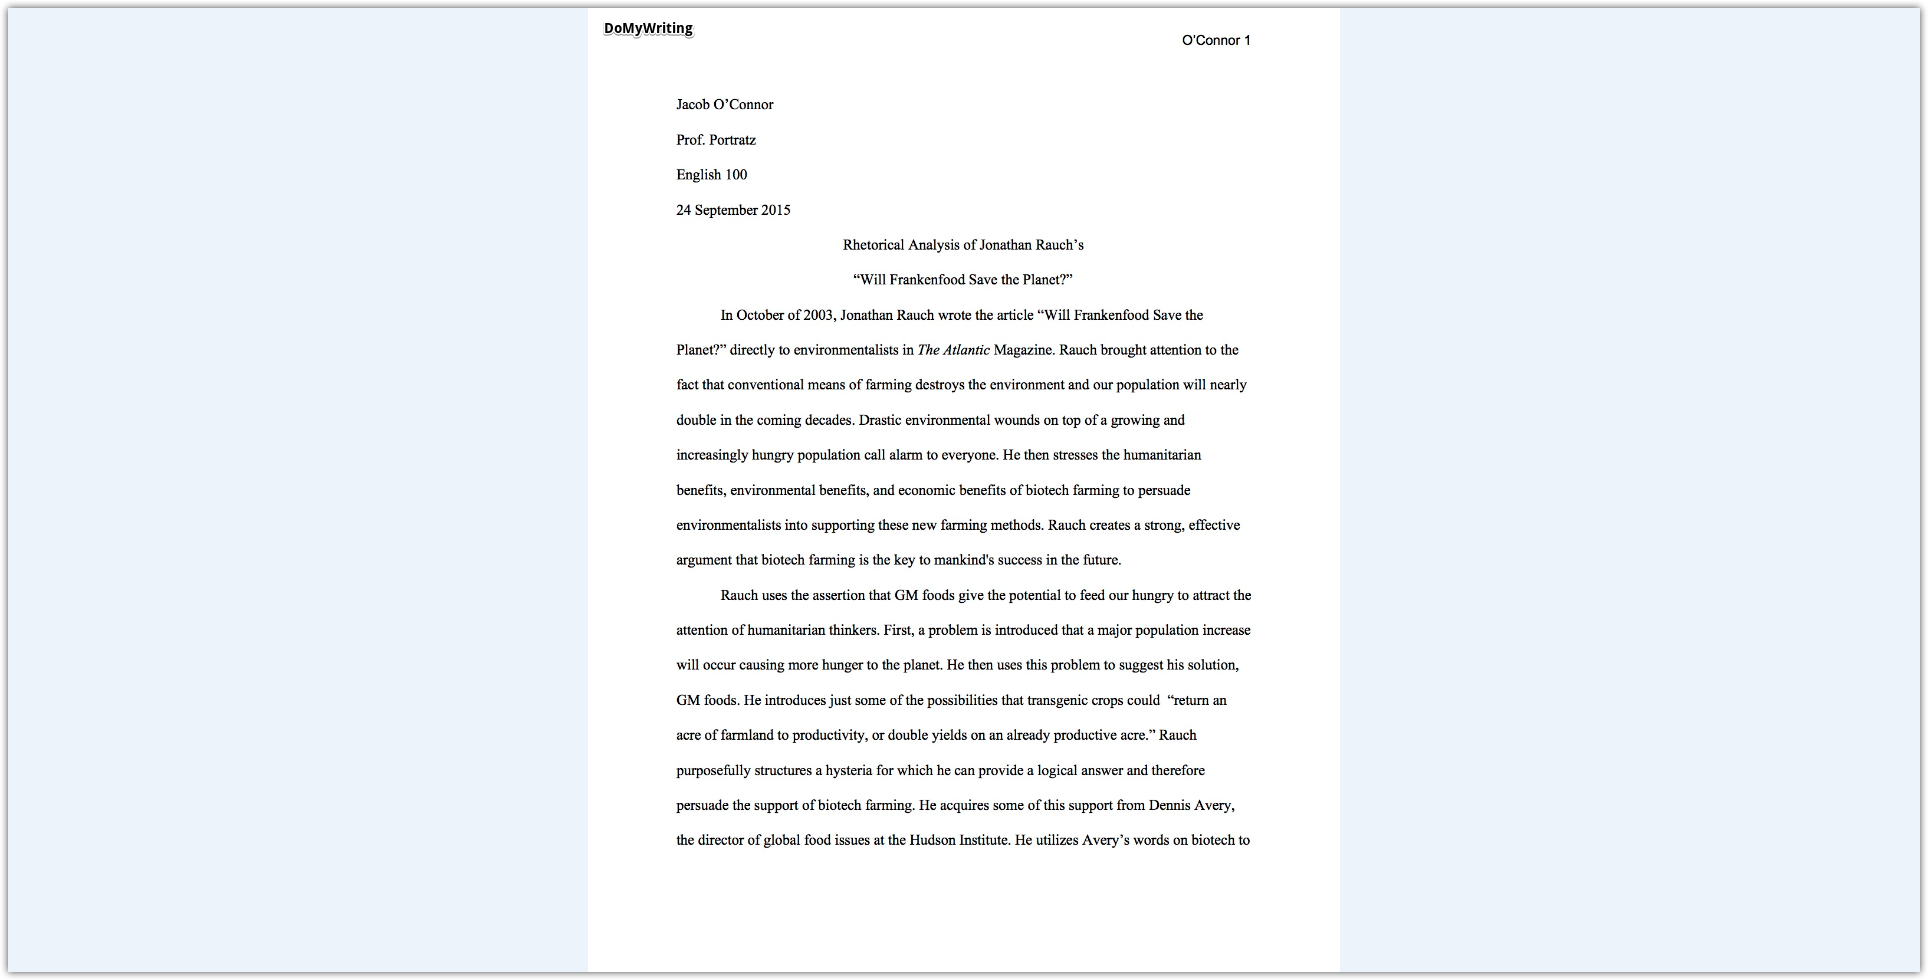 007 Essay Example Rhetorical Analysis Definition Striking Essays Topics Strategies Examples College Question Full